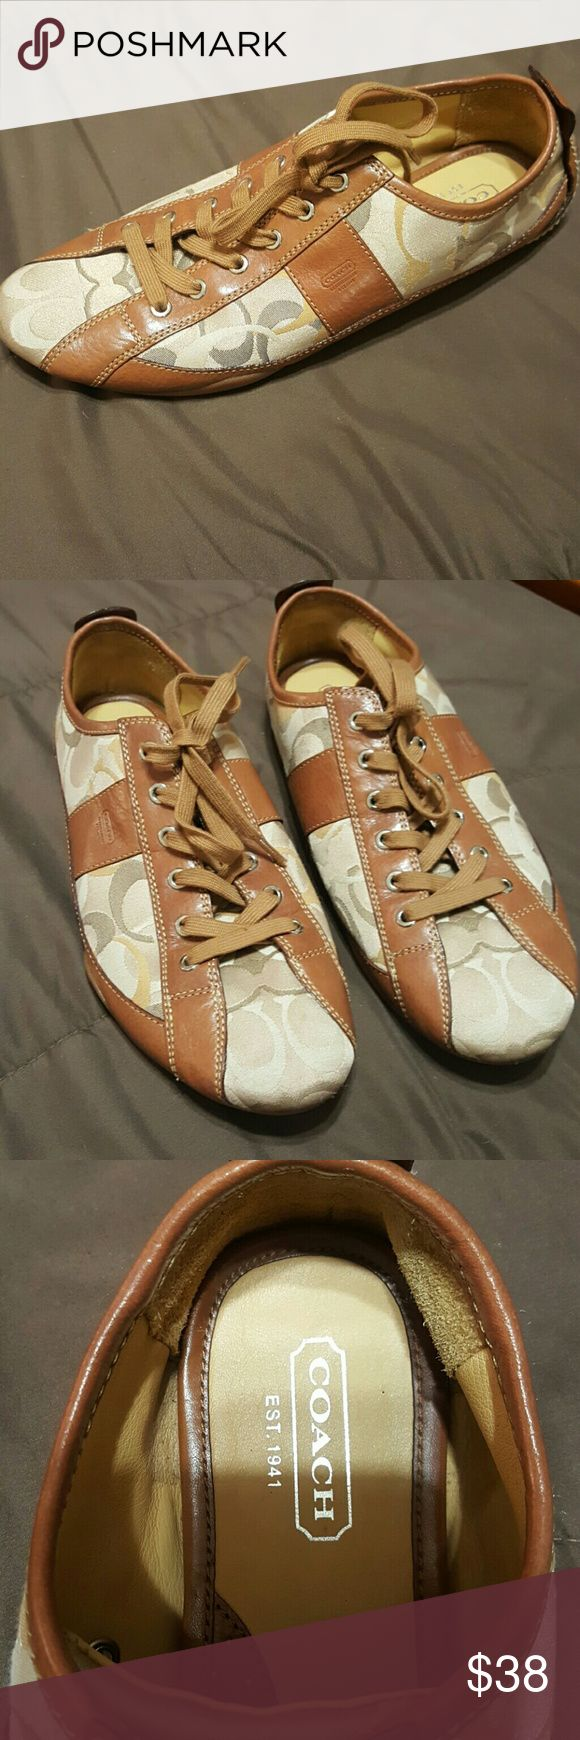 Coach mens shoes brown/ cream 11 Coach men's shoes brown/ cream 11 great condition only wore twice (too big for husband's feet) Coach Shoes